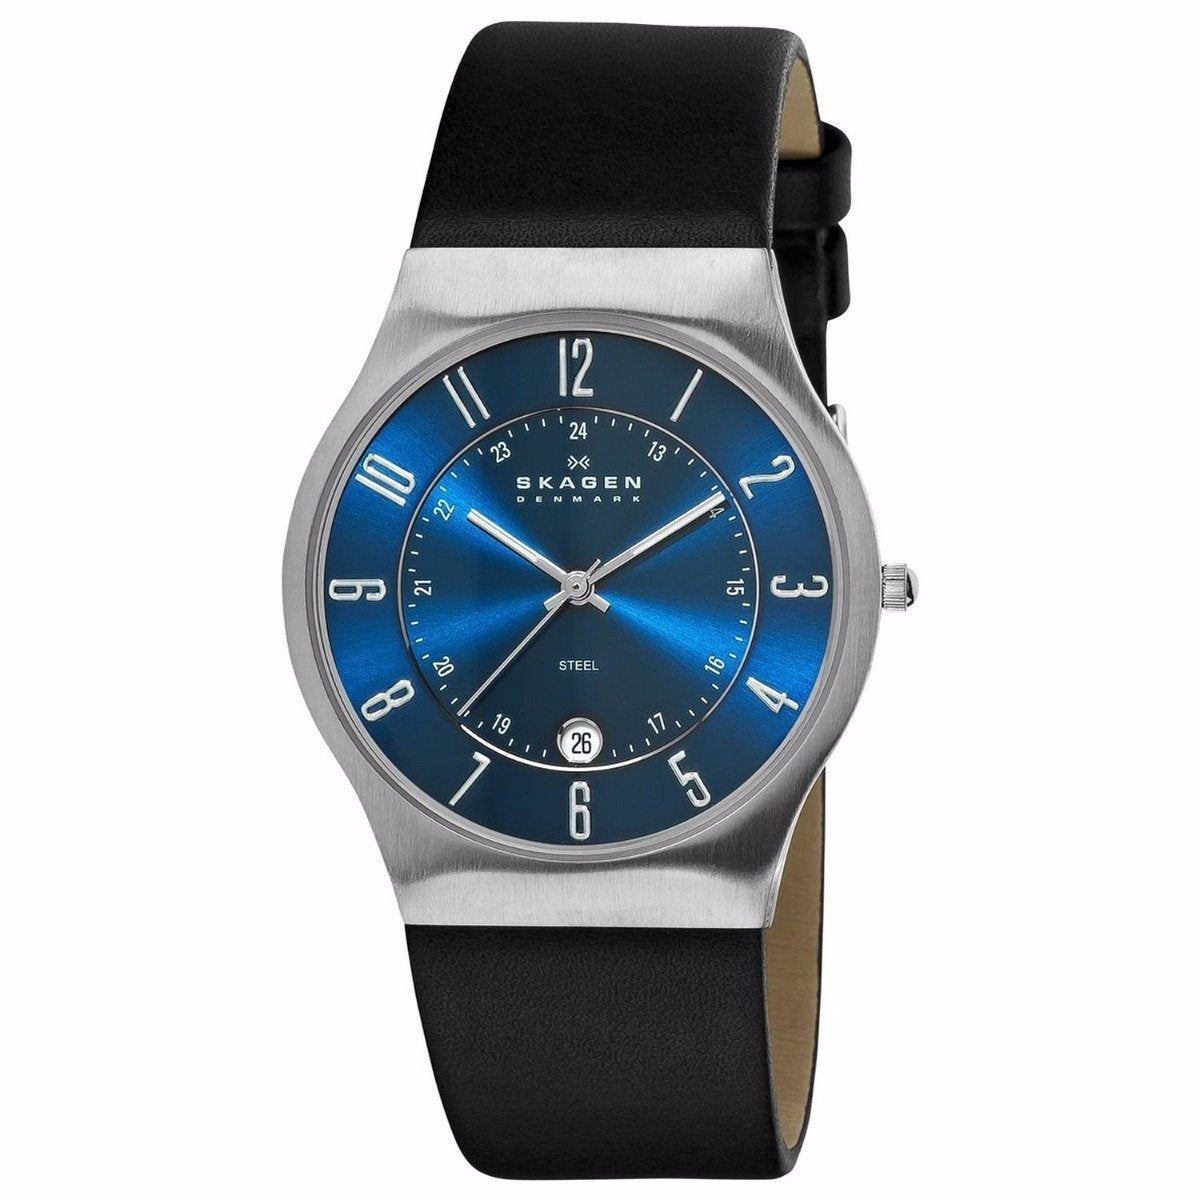 233xxlsln Skagen Men's Watch Leather Bleu Analogue Dial hsQCtrdx